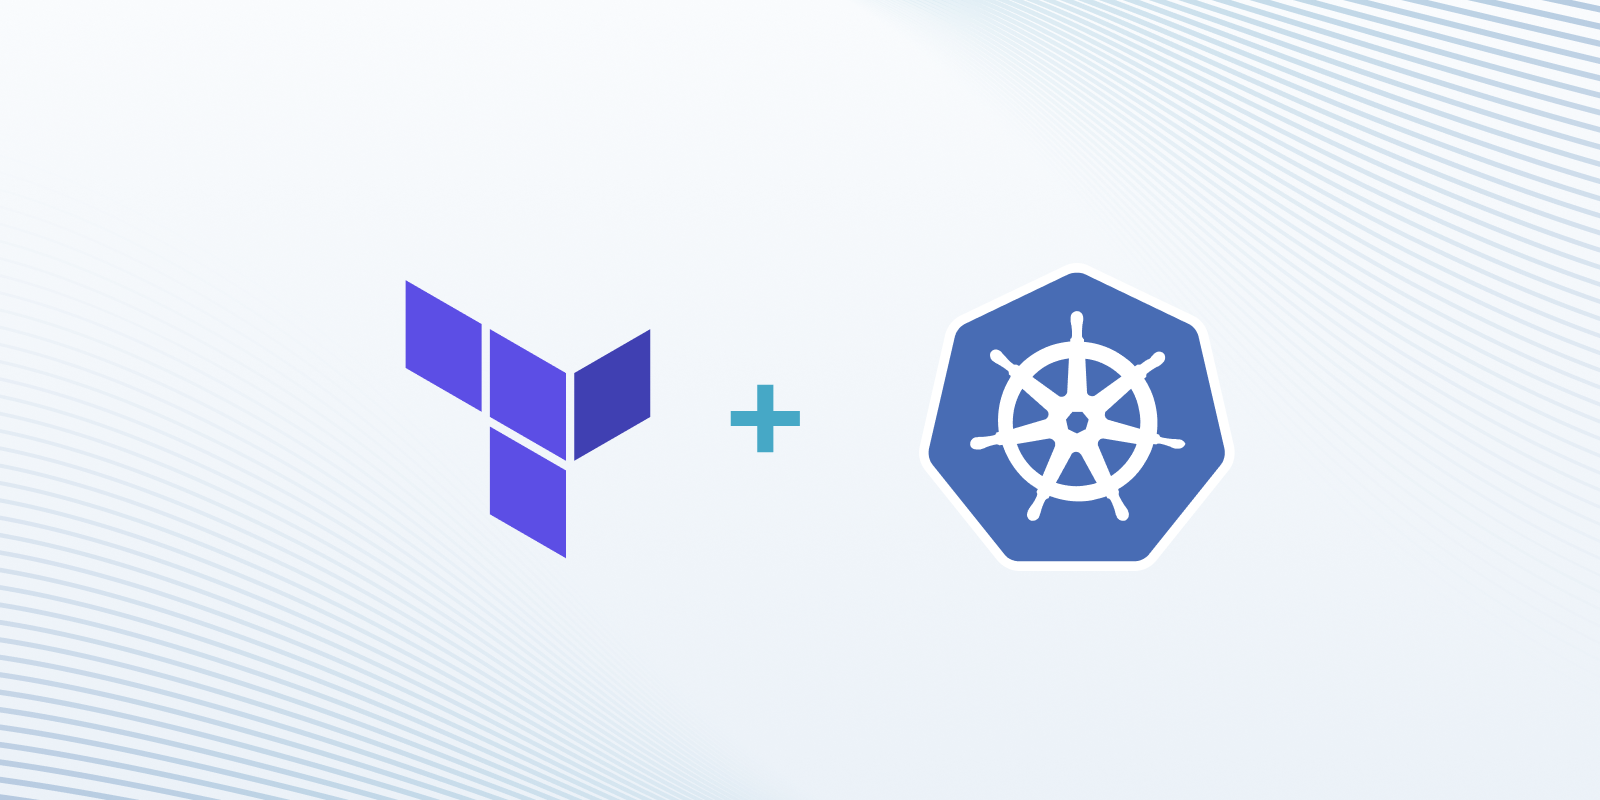 Blog-Concepts Behind Terraform and Kubernetes by Moritz Kneilmann